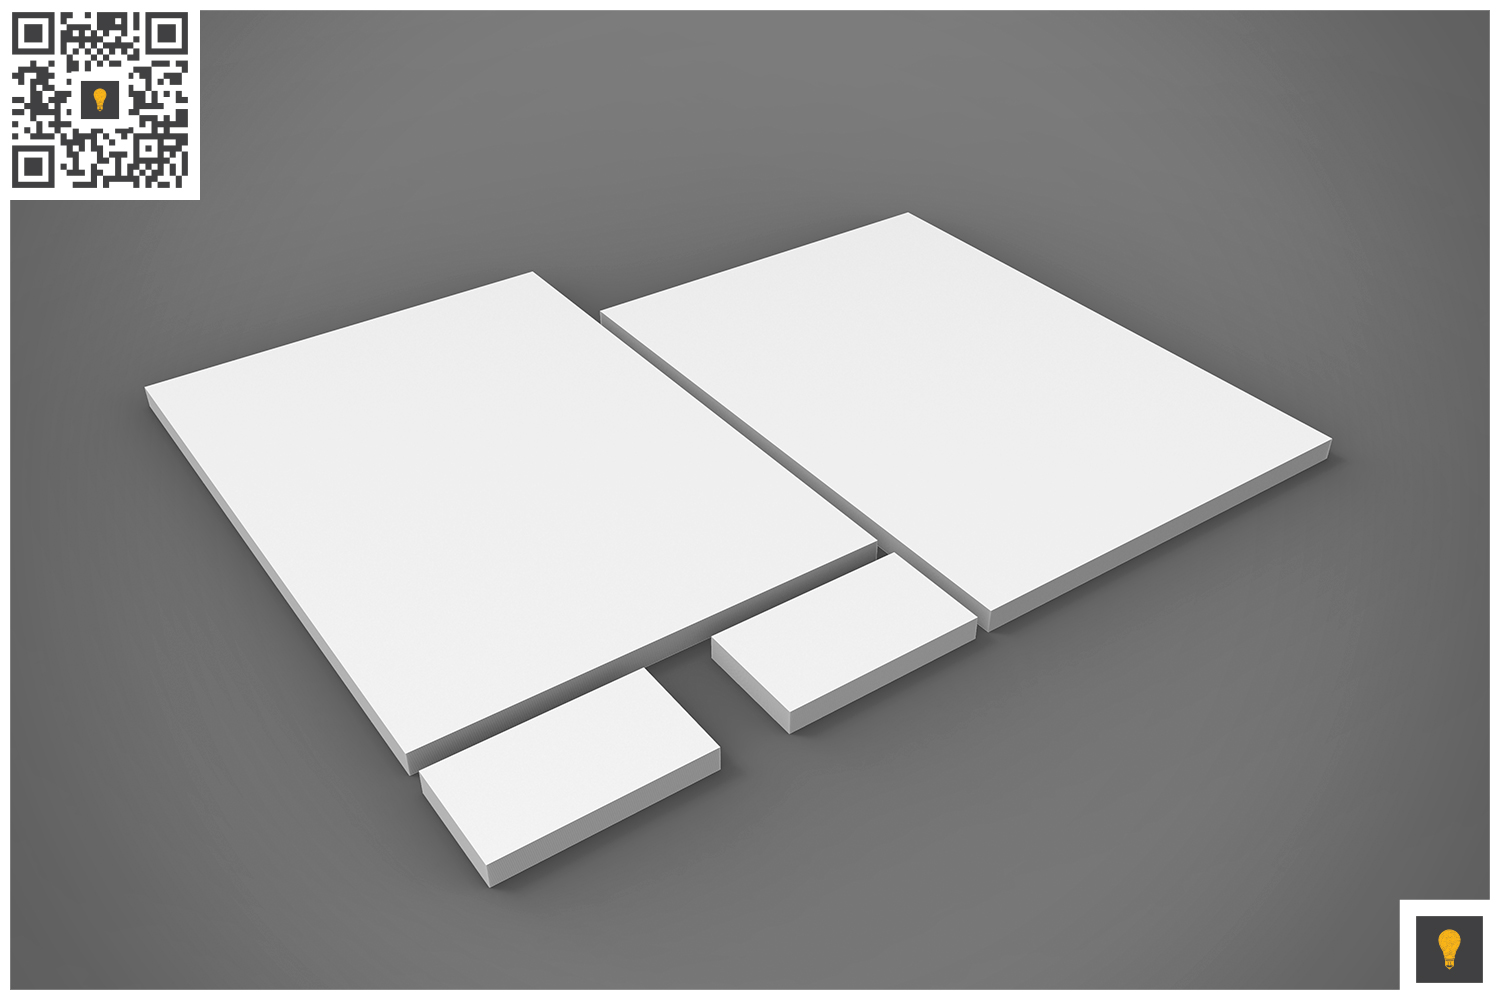 Branding Stationary 3D Render example image 18